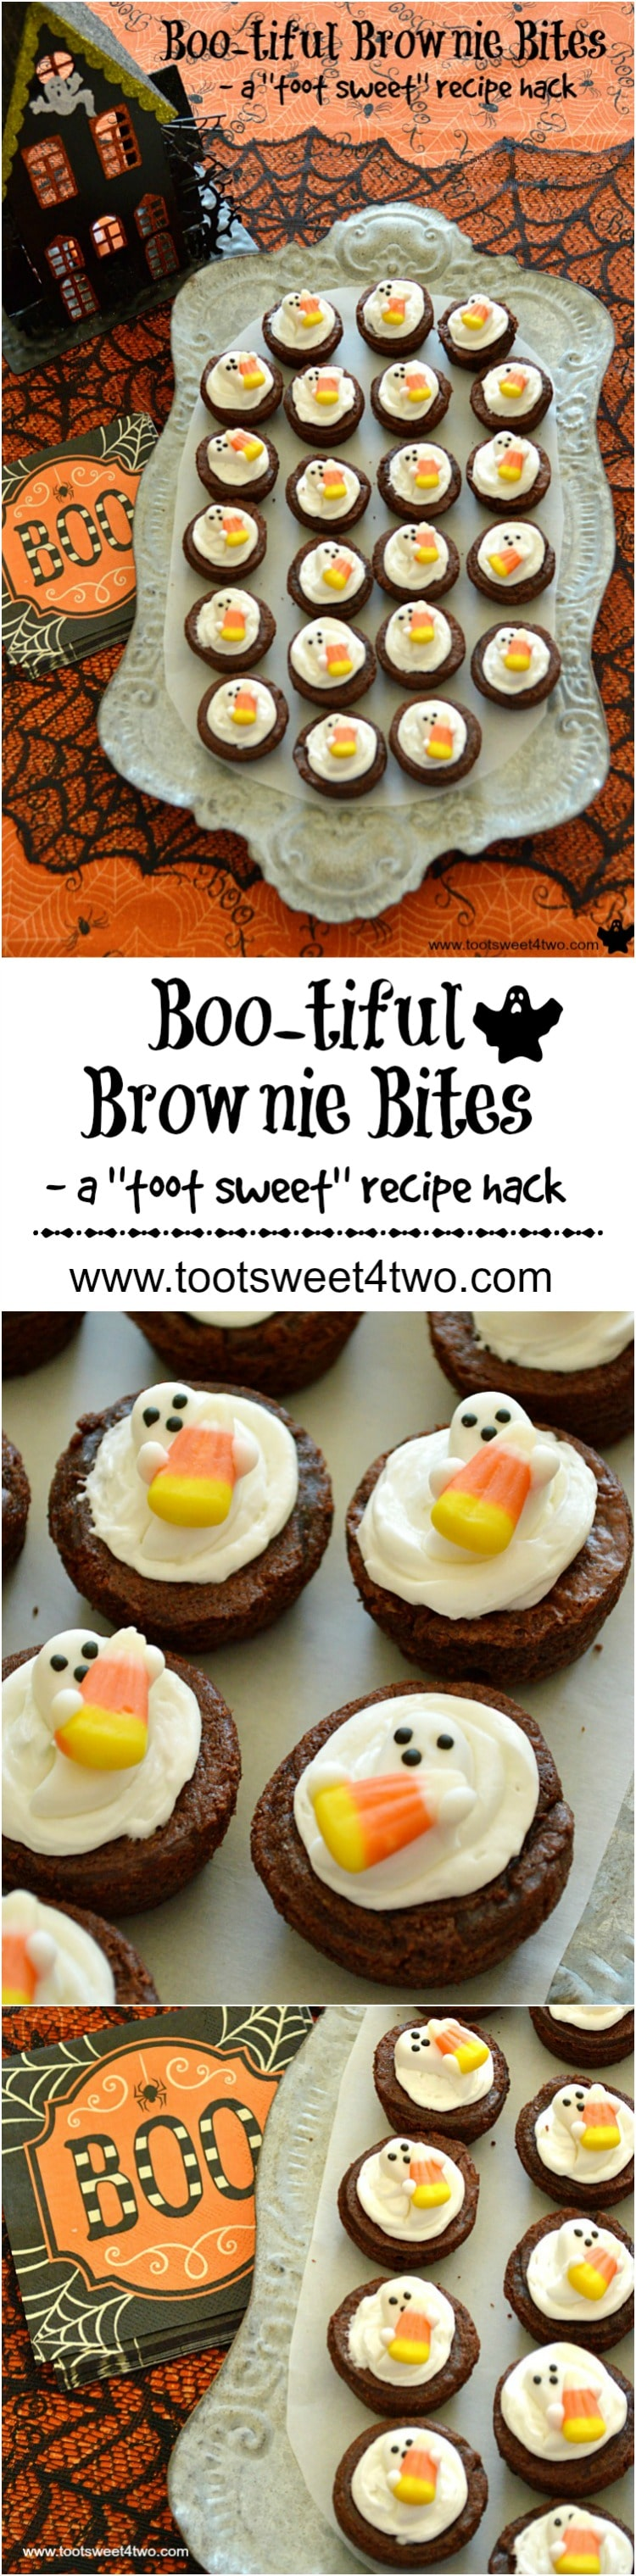 Boo-tiful Brownie Bites Pinterest collage